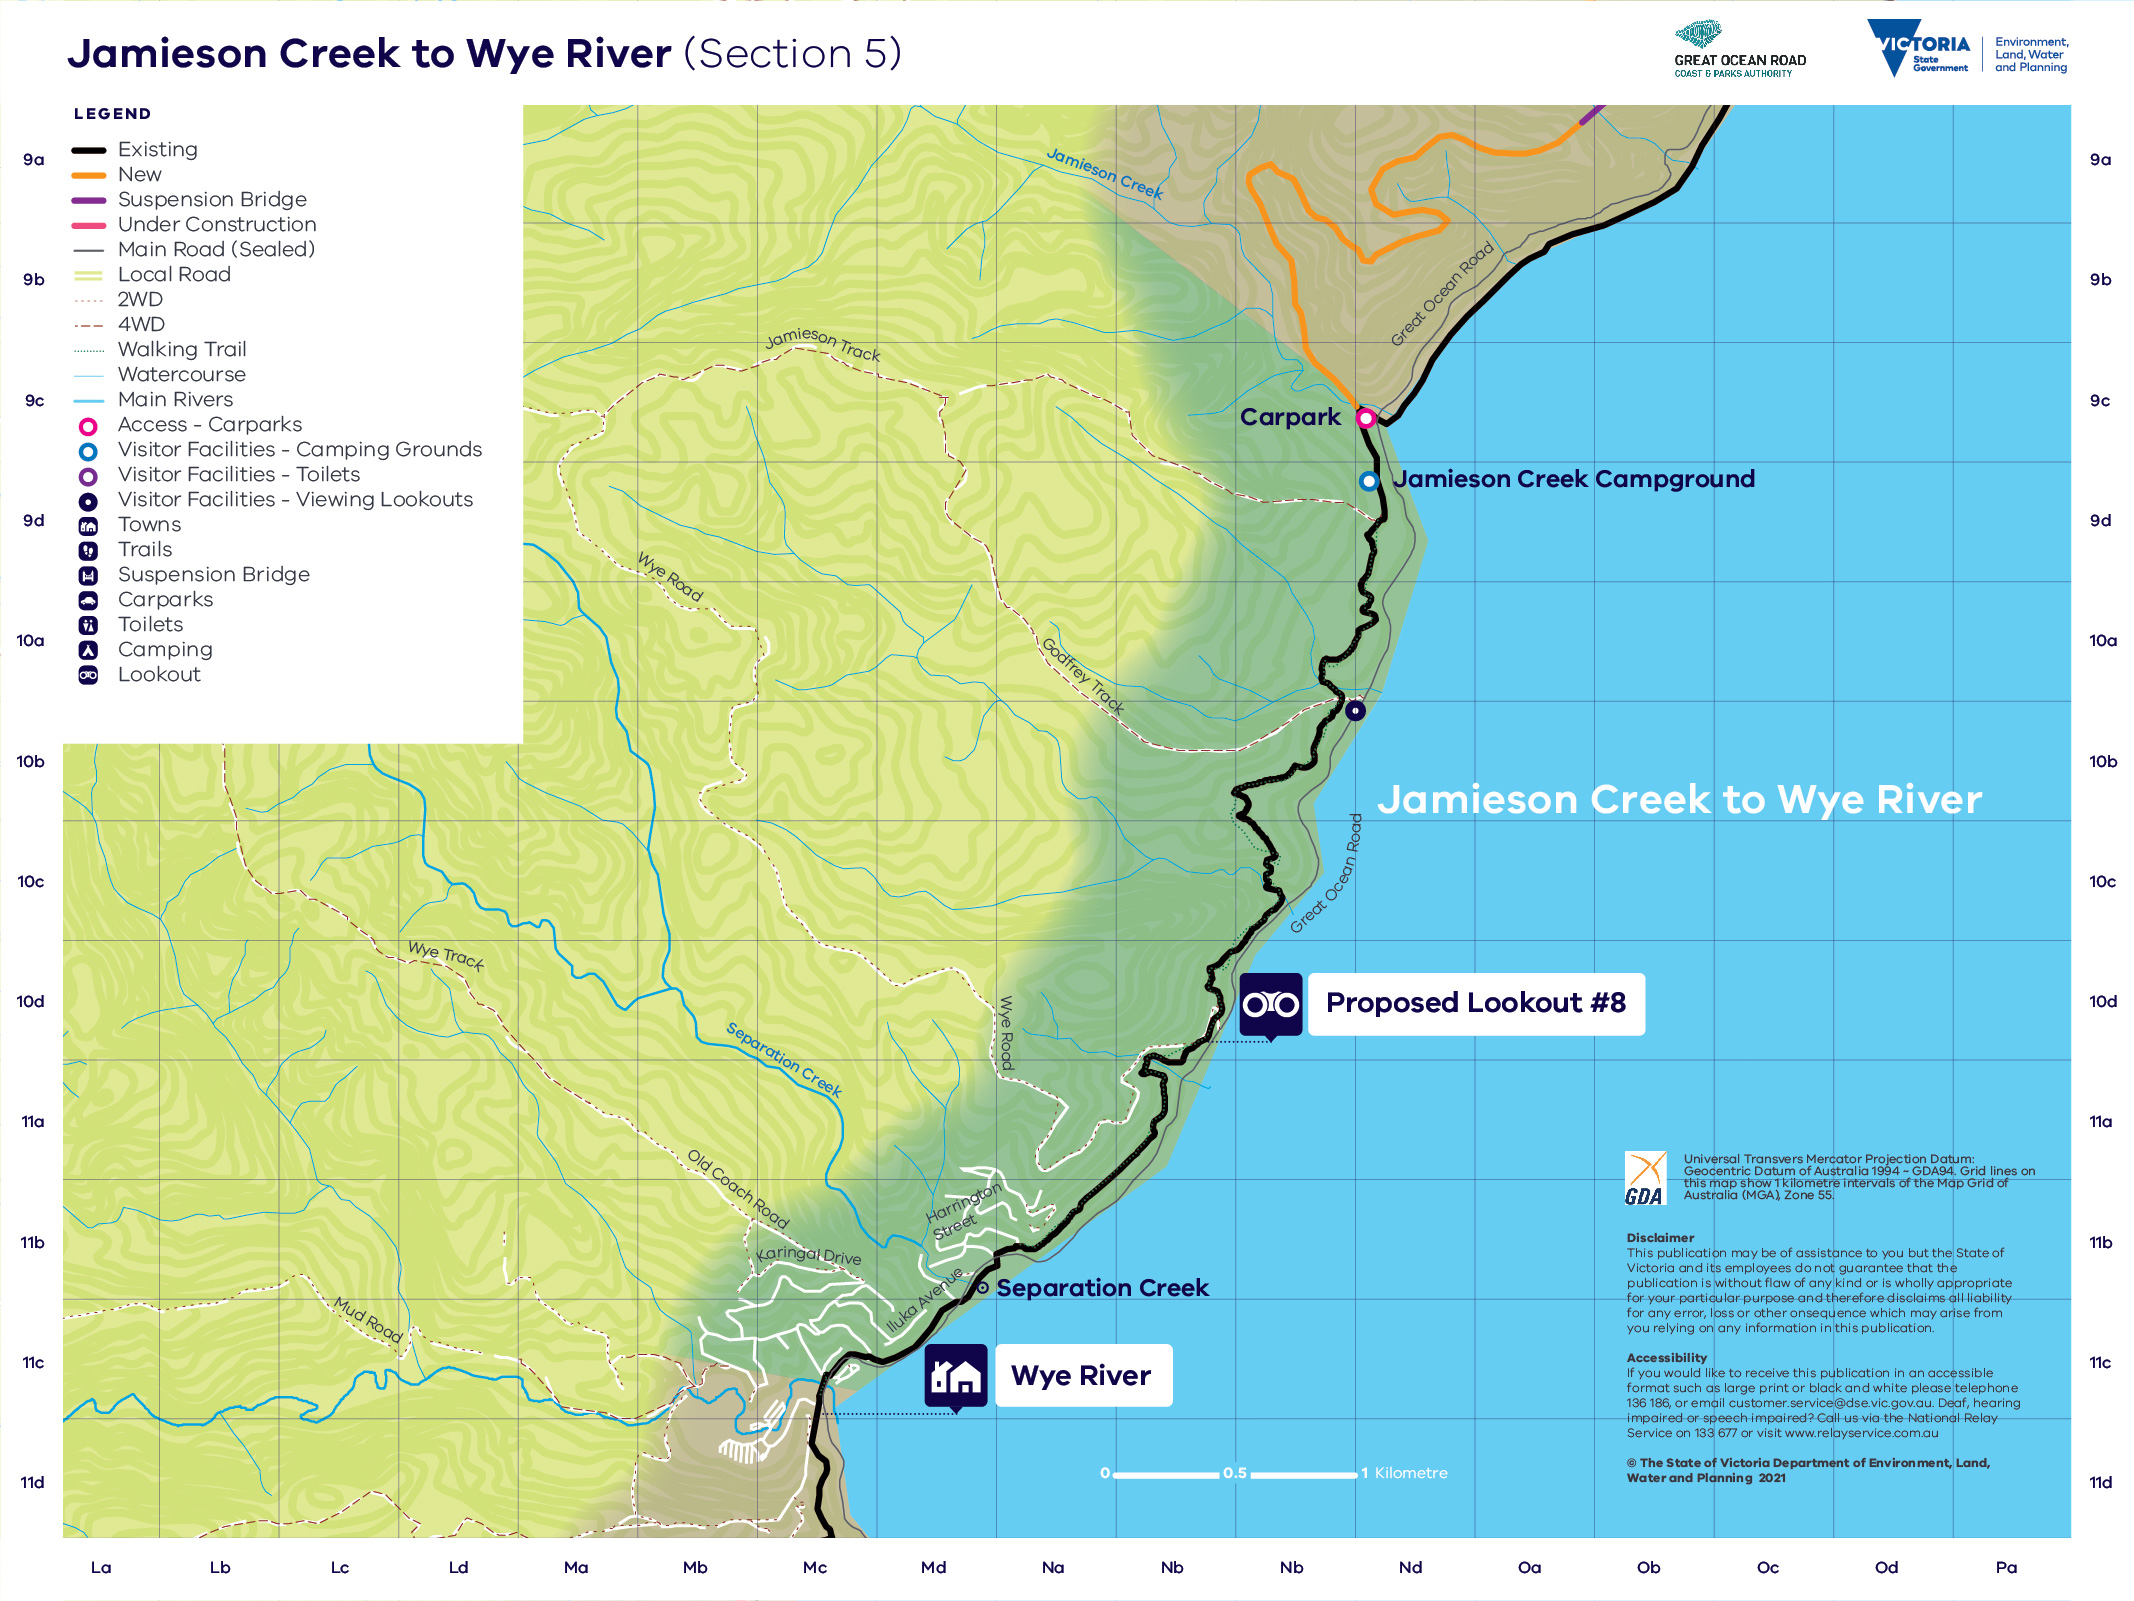 Map showing the trail route for section 5 from Jamieson Creek to Wye River